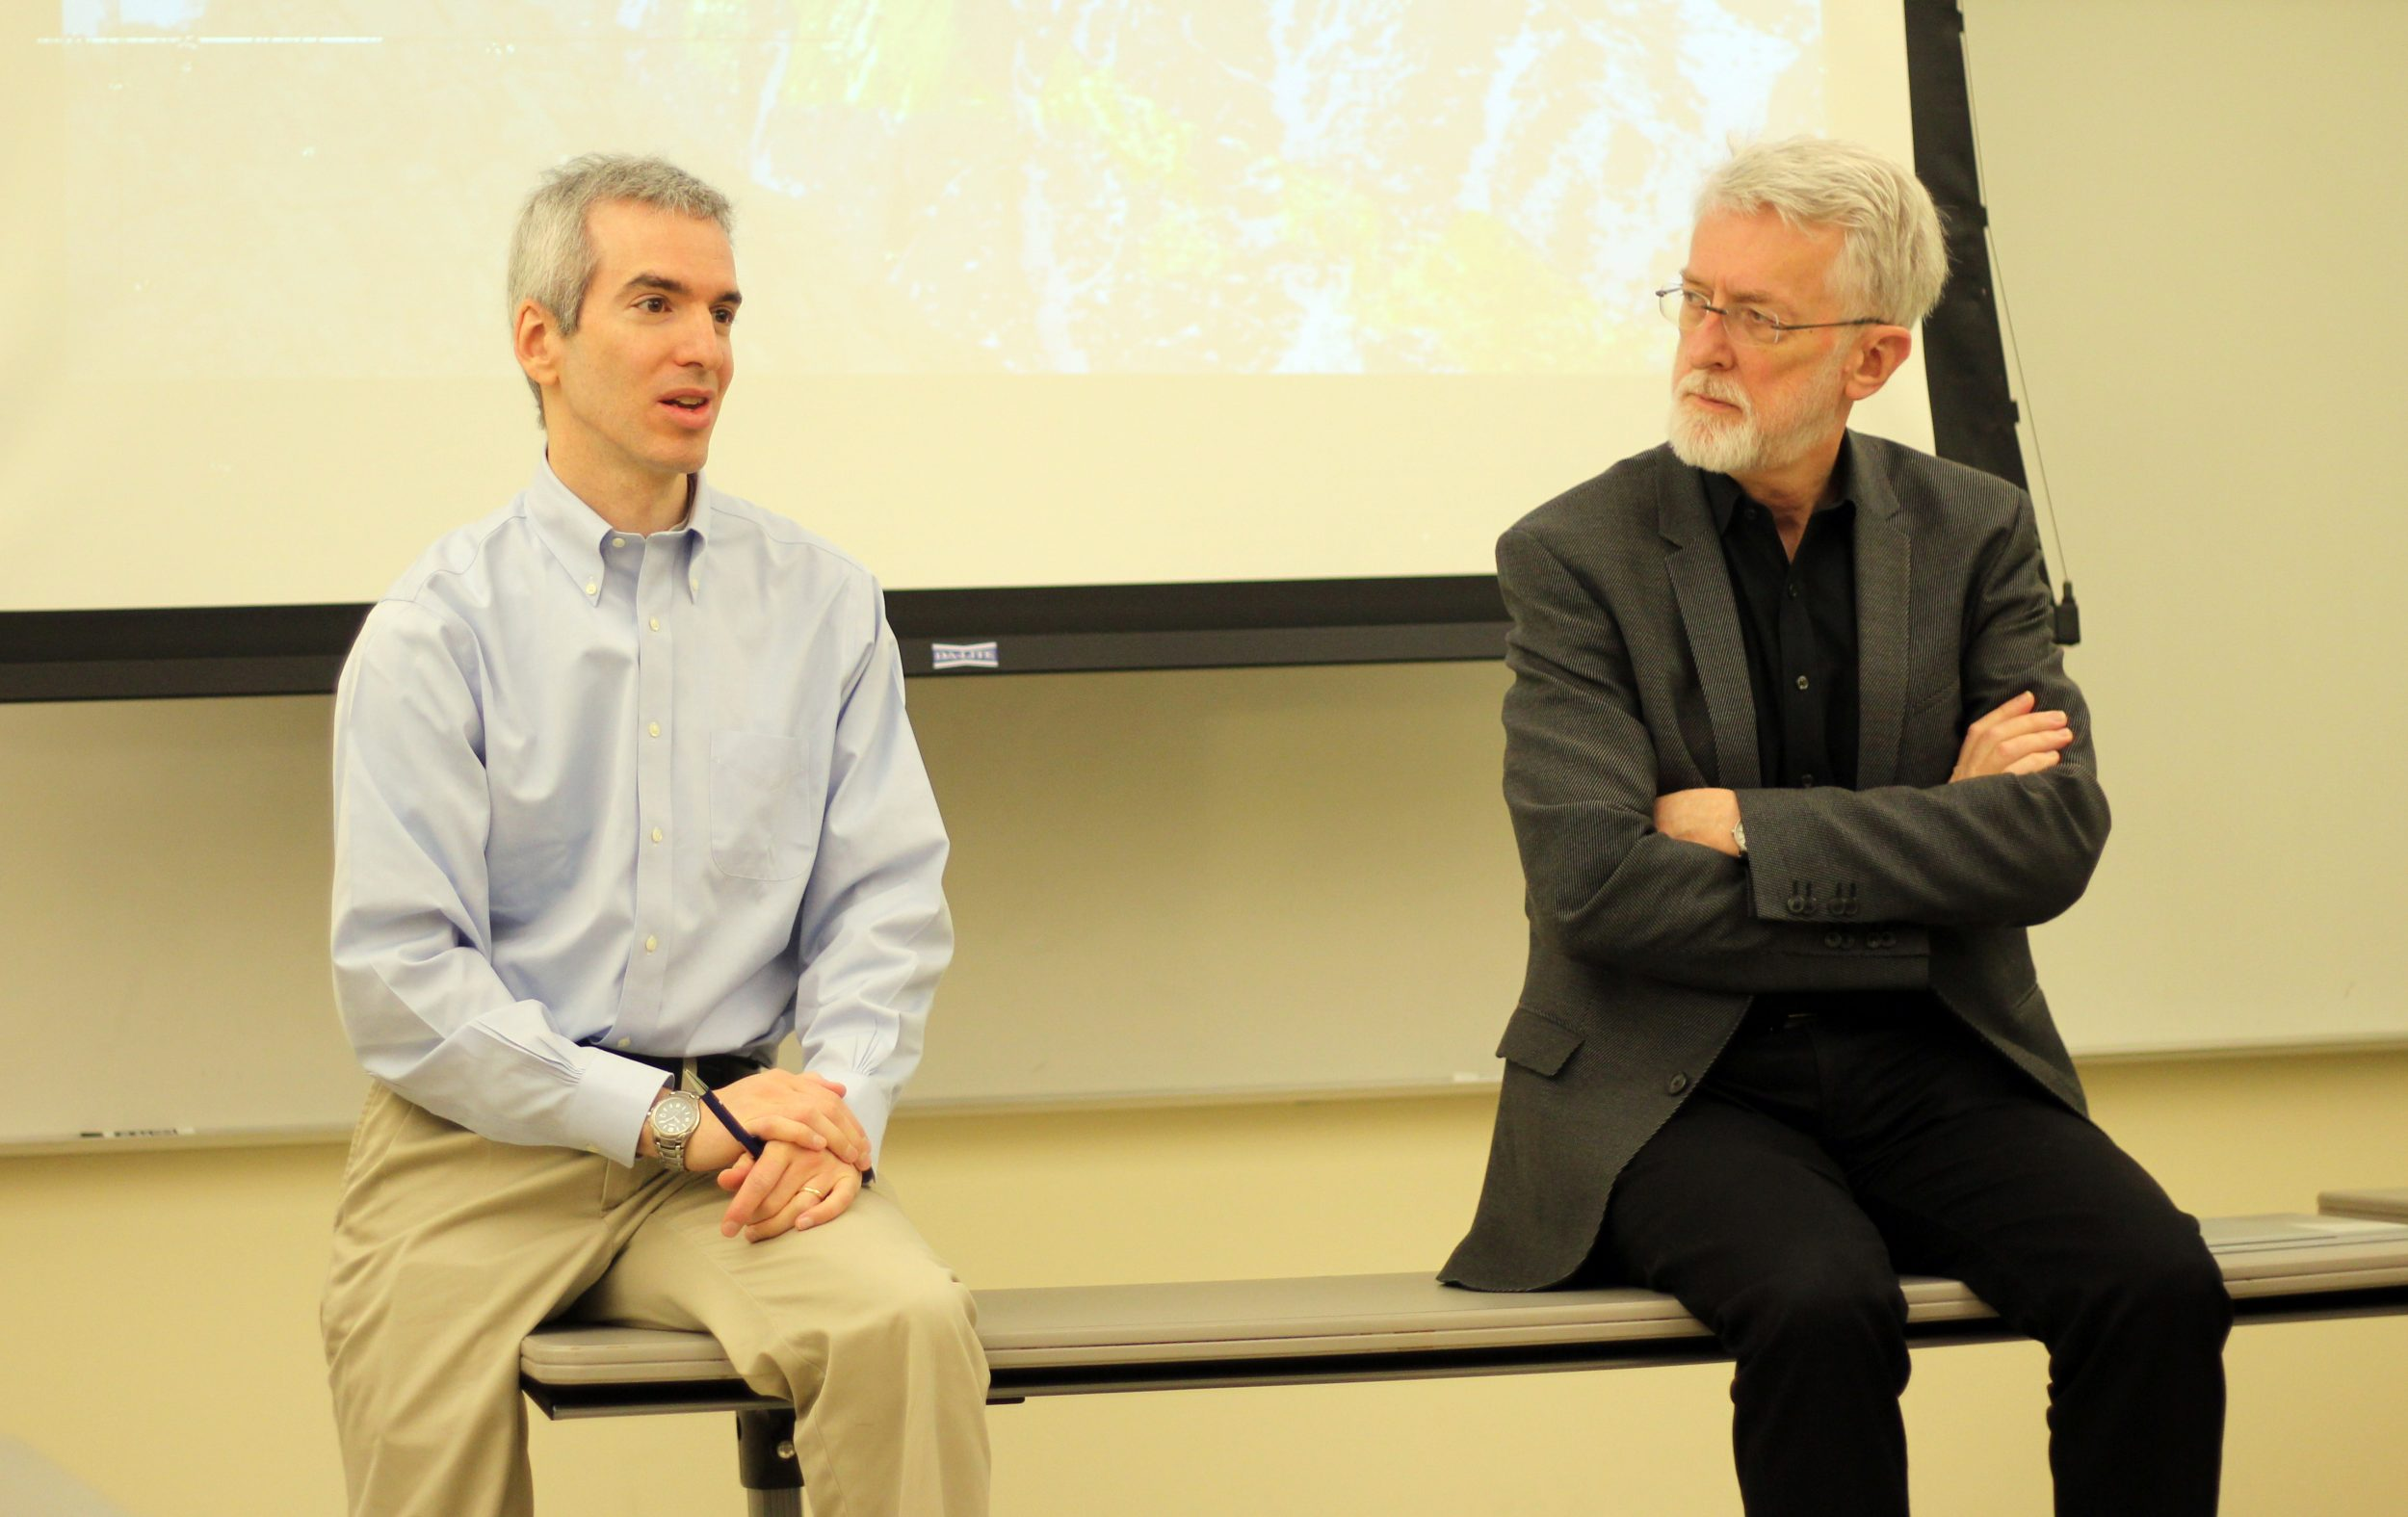 Students enjoyed an excellent presentation from CUNY's journalism lecturers Jeff Jarvis and Jeremy Caplan.